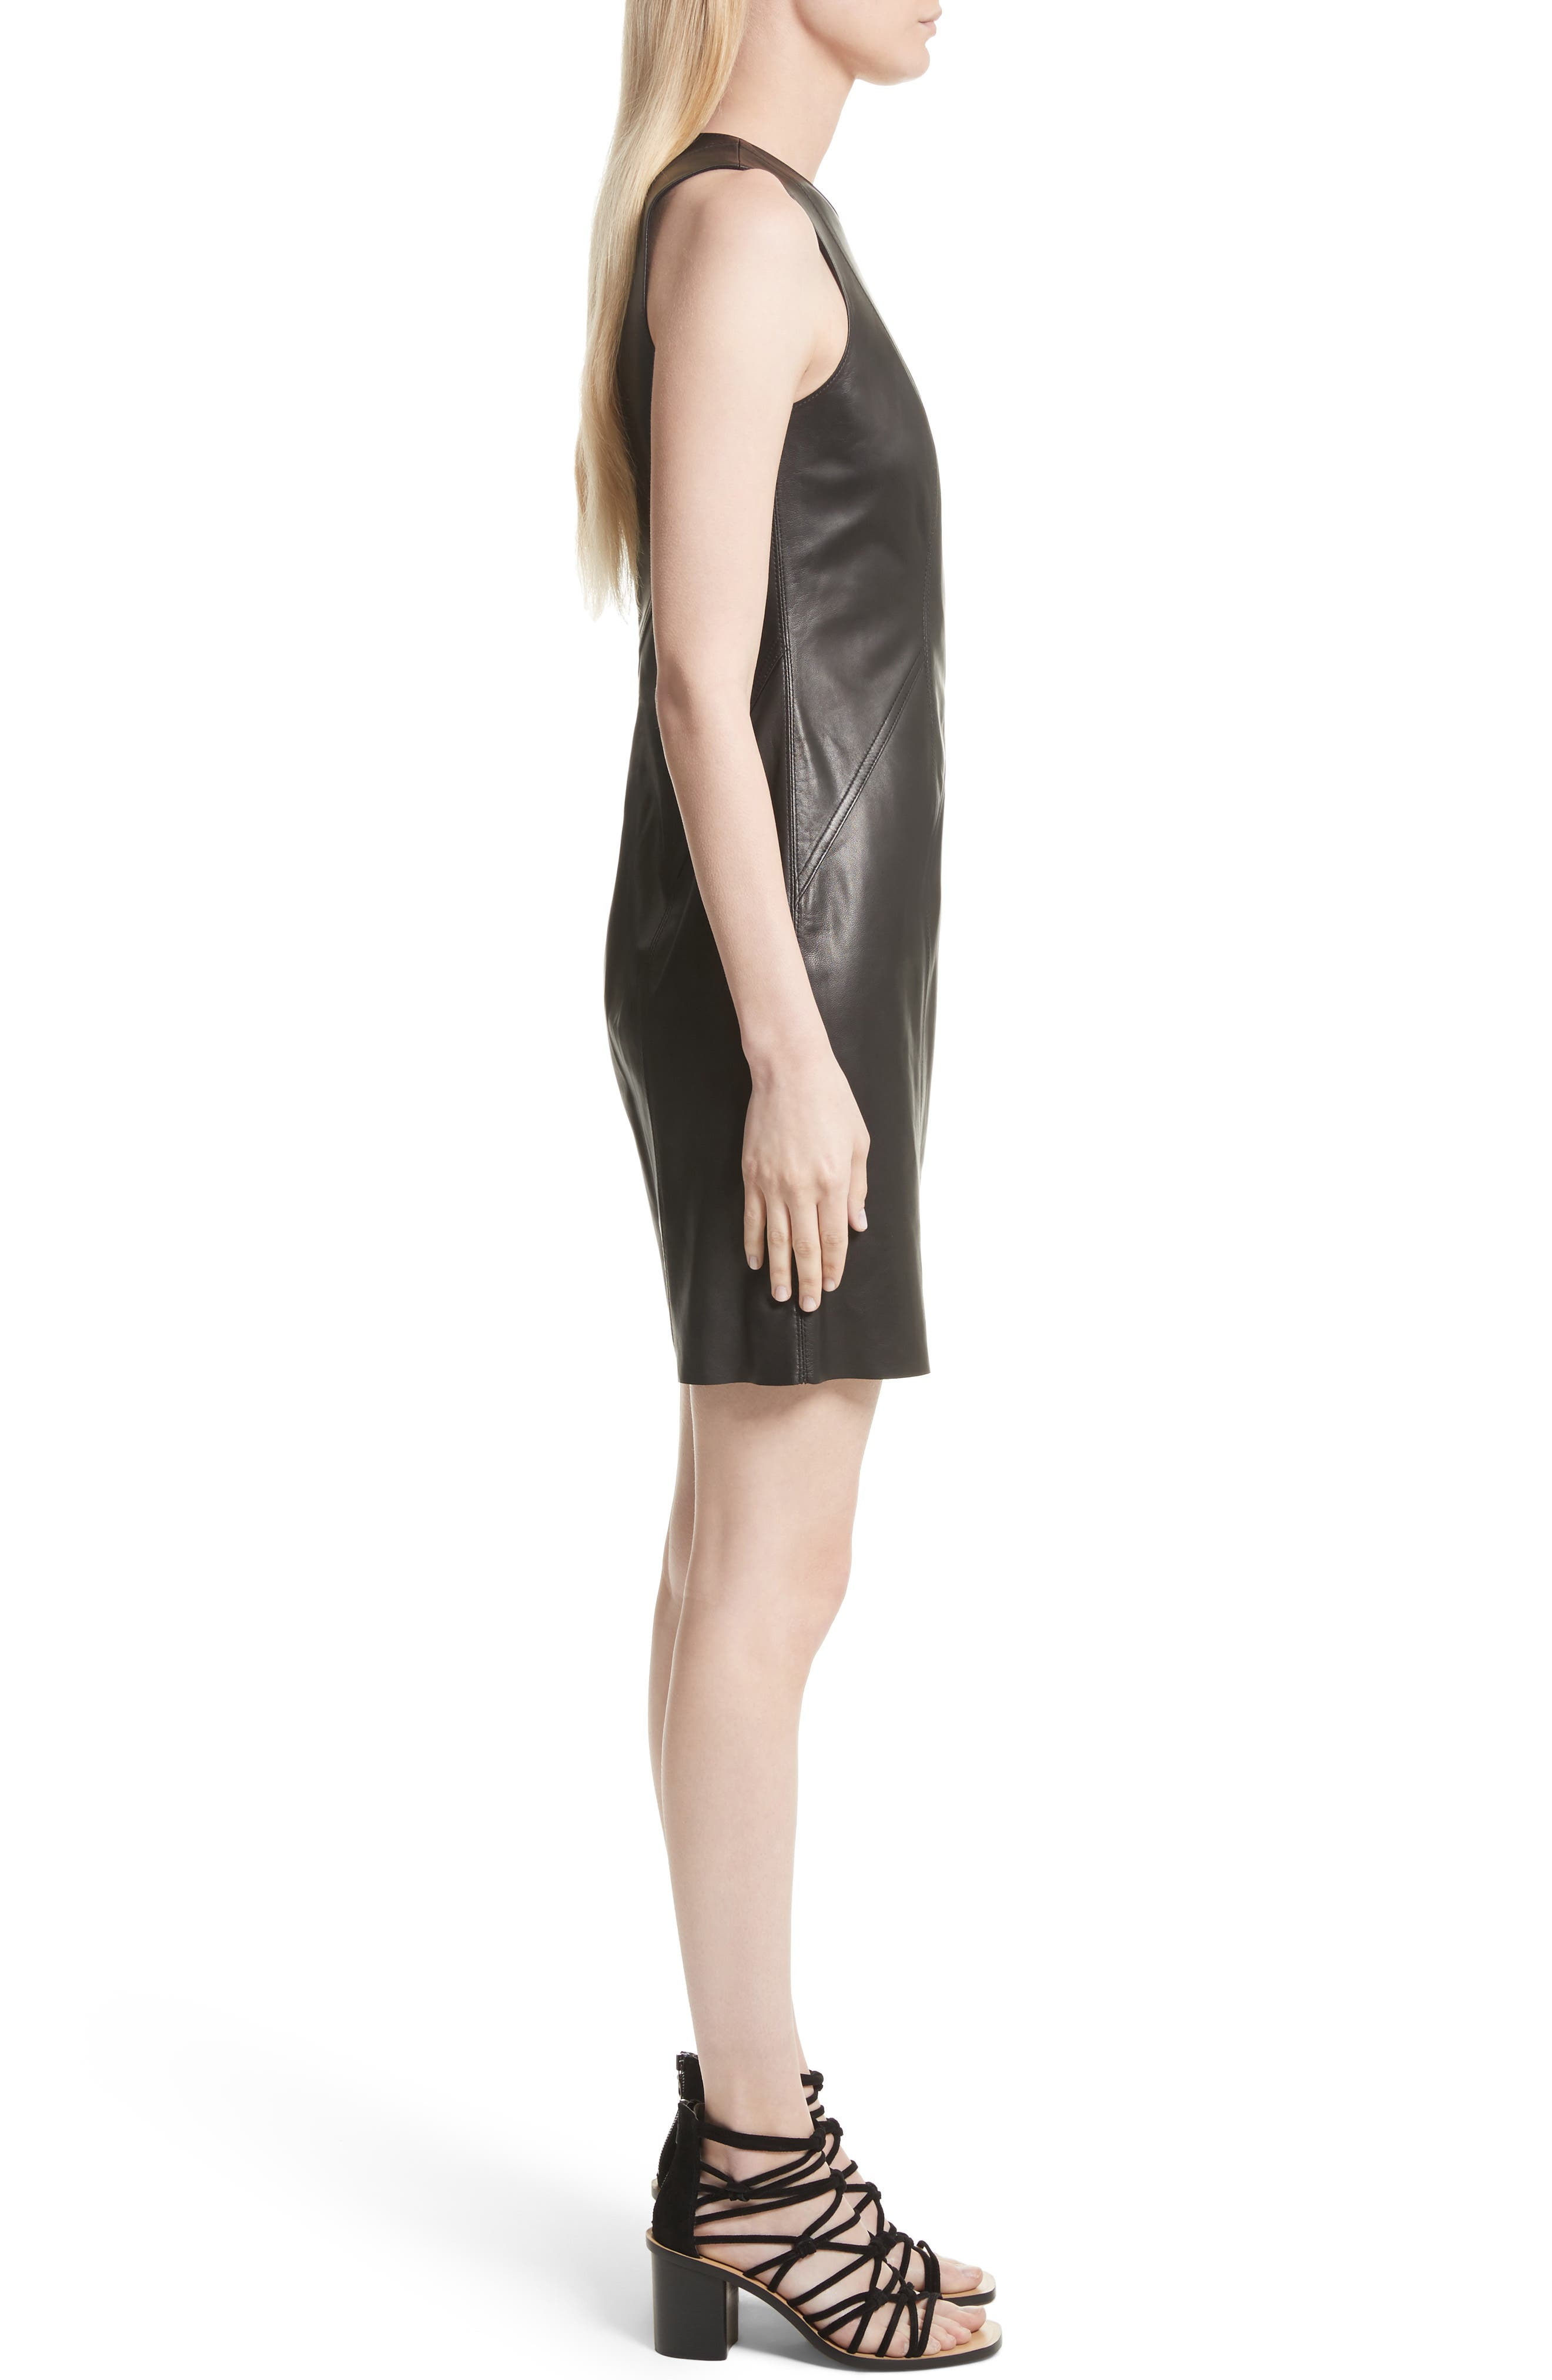 Loxley Leather Dress,                             Alternate thumbnail 3, color,                             Black